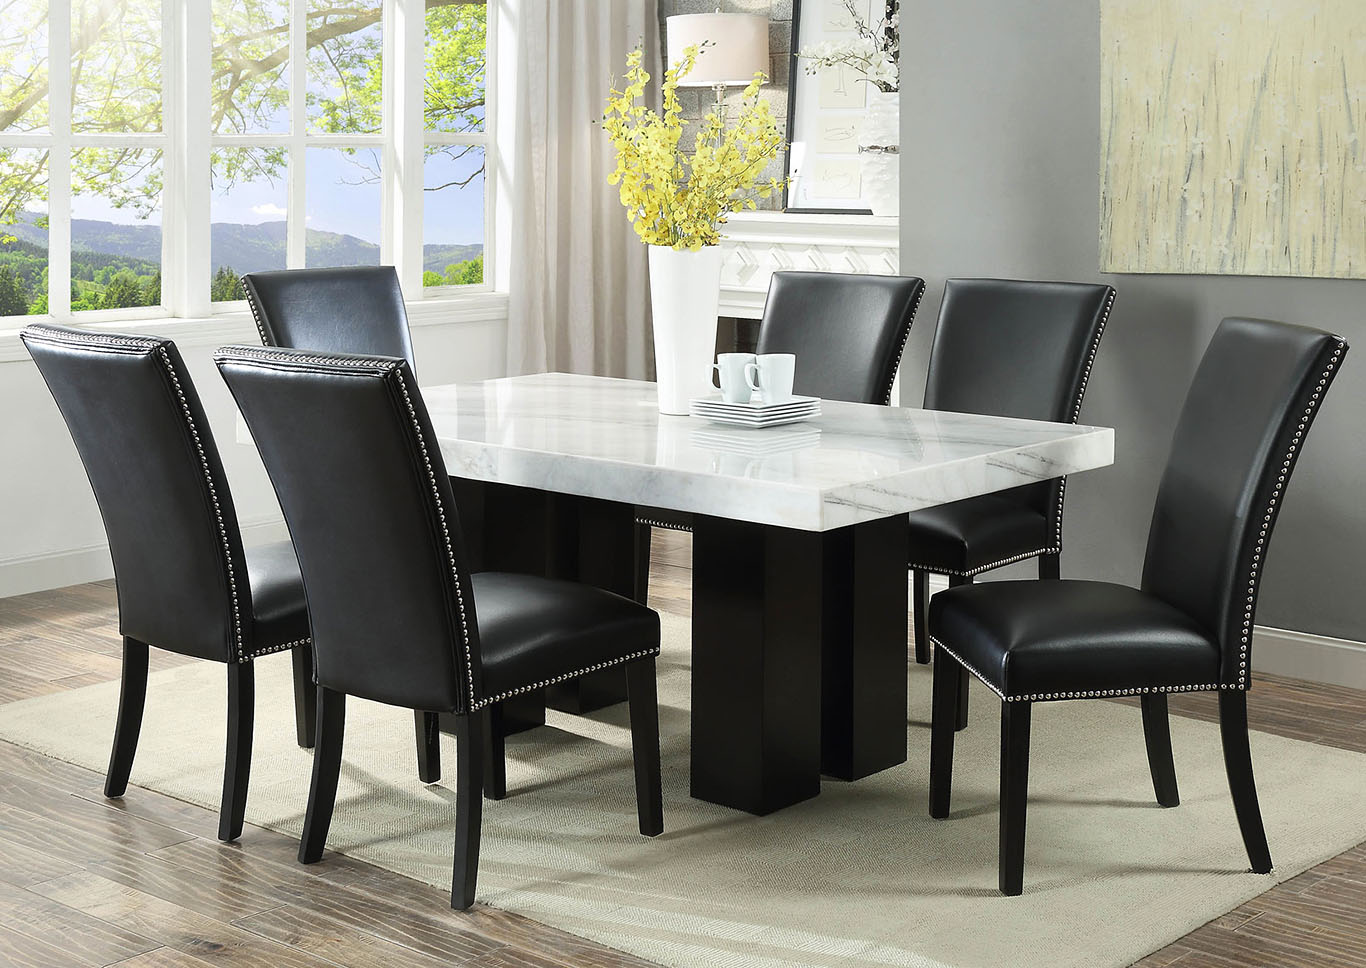 Camila Brown Rectangular Marble Top Dining Set W/ 9 Chairs [Black ...